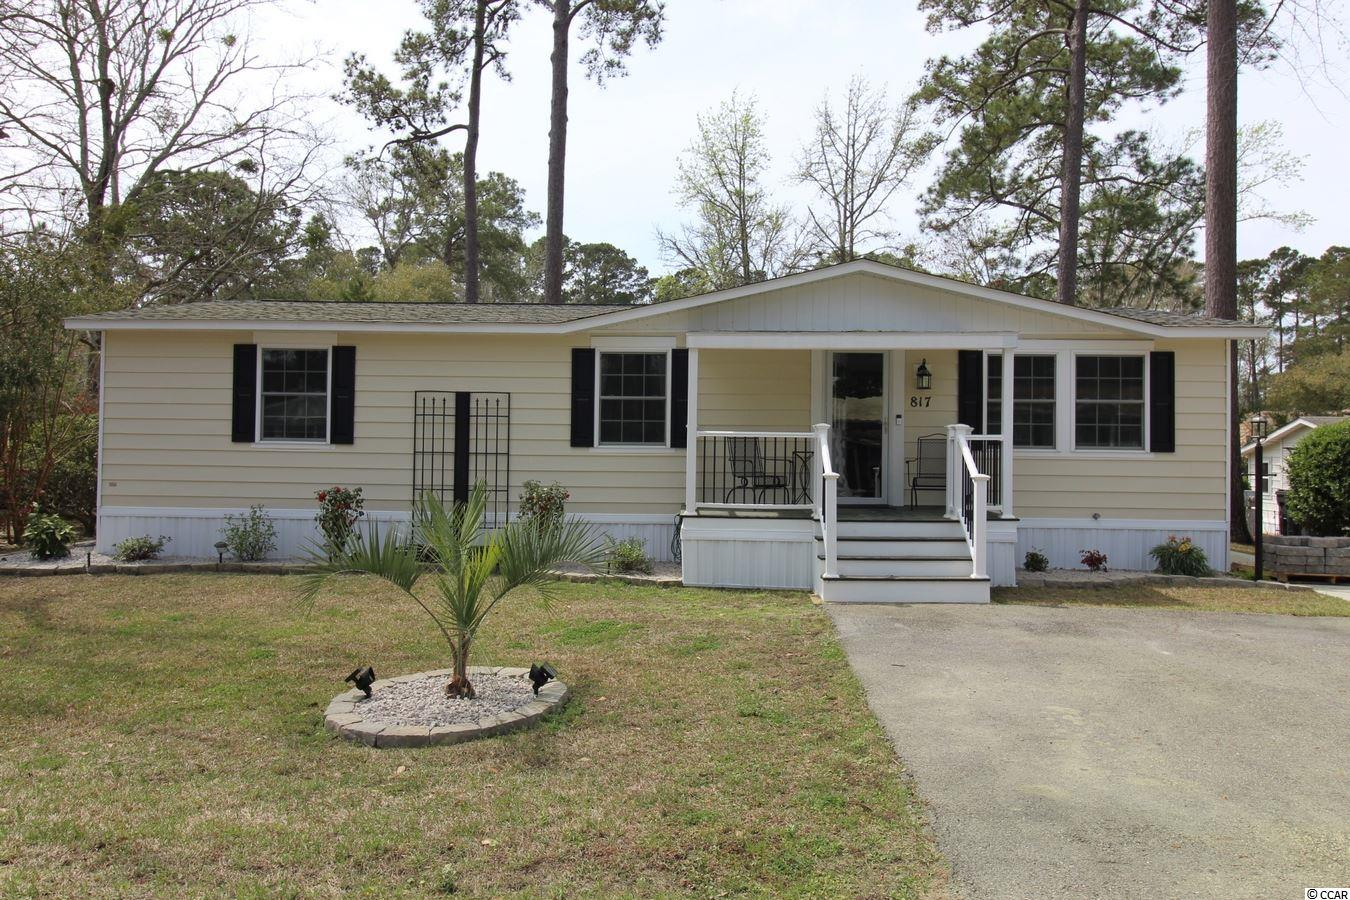 This 2BR/2BA manufactured home which has been completely renovated with high quality fixtures, appliances & laminate flooring is located in Ocean Pines, an active 55+ manufactured home community in Garden City Beach with very reasonable land lease terms. The kitchen features new stainless-steel appliances, including flat top stove and built-in microwave. The spacious master bedroom (15.5' x 11') has a walk-in closet and ceiling fan. There is a sunny Carolina Room (19' x 9.7') off of the dining area/kitchen. Quality crown molding & New double paned tilt windows. There is 16' x 20' deck in the back yard where you can relax with family enjoying the views of a community pond. There is a 10' x 12' storage shed which will convey. Upgraded electrical system and lawn irrigation in the front yard. Roof replaced in September 2014. Residents in Ocean Pines enjoy great community amenities near the Atlantic Coast. Take a walk or bike ride through the landscaped grounds with plenty of shade from the pine trees and magnolias. Beat the summer heat with a few laps in one of two swimming pools. Two clubhouses offer great opportunities to get to know your neighbors during organized activities and planned events. Recreational opportunities include billiards, bocce ball, and horseshoes. Find your new favorite book in the community library. The Ocean Pines 55+ community is conveniently close to retail, restaurants, The Murrells Inlet Marsh Walk and all the attractions & amenities that make this South Strand location special.